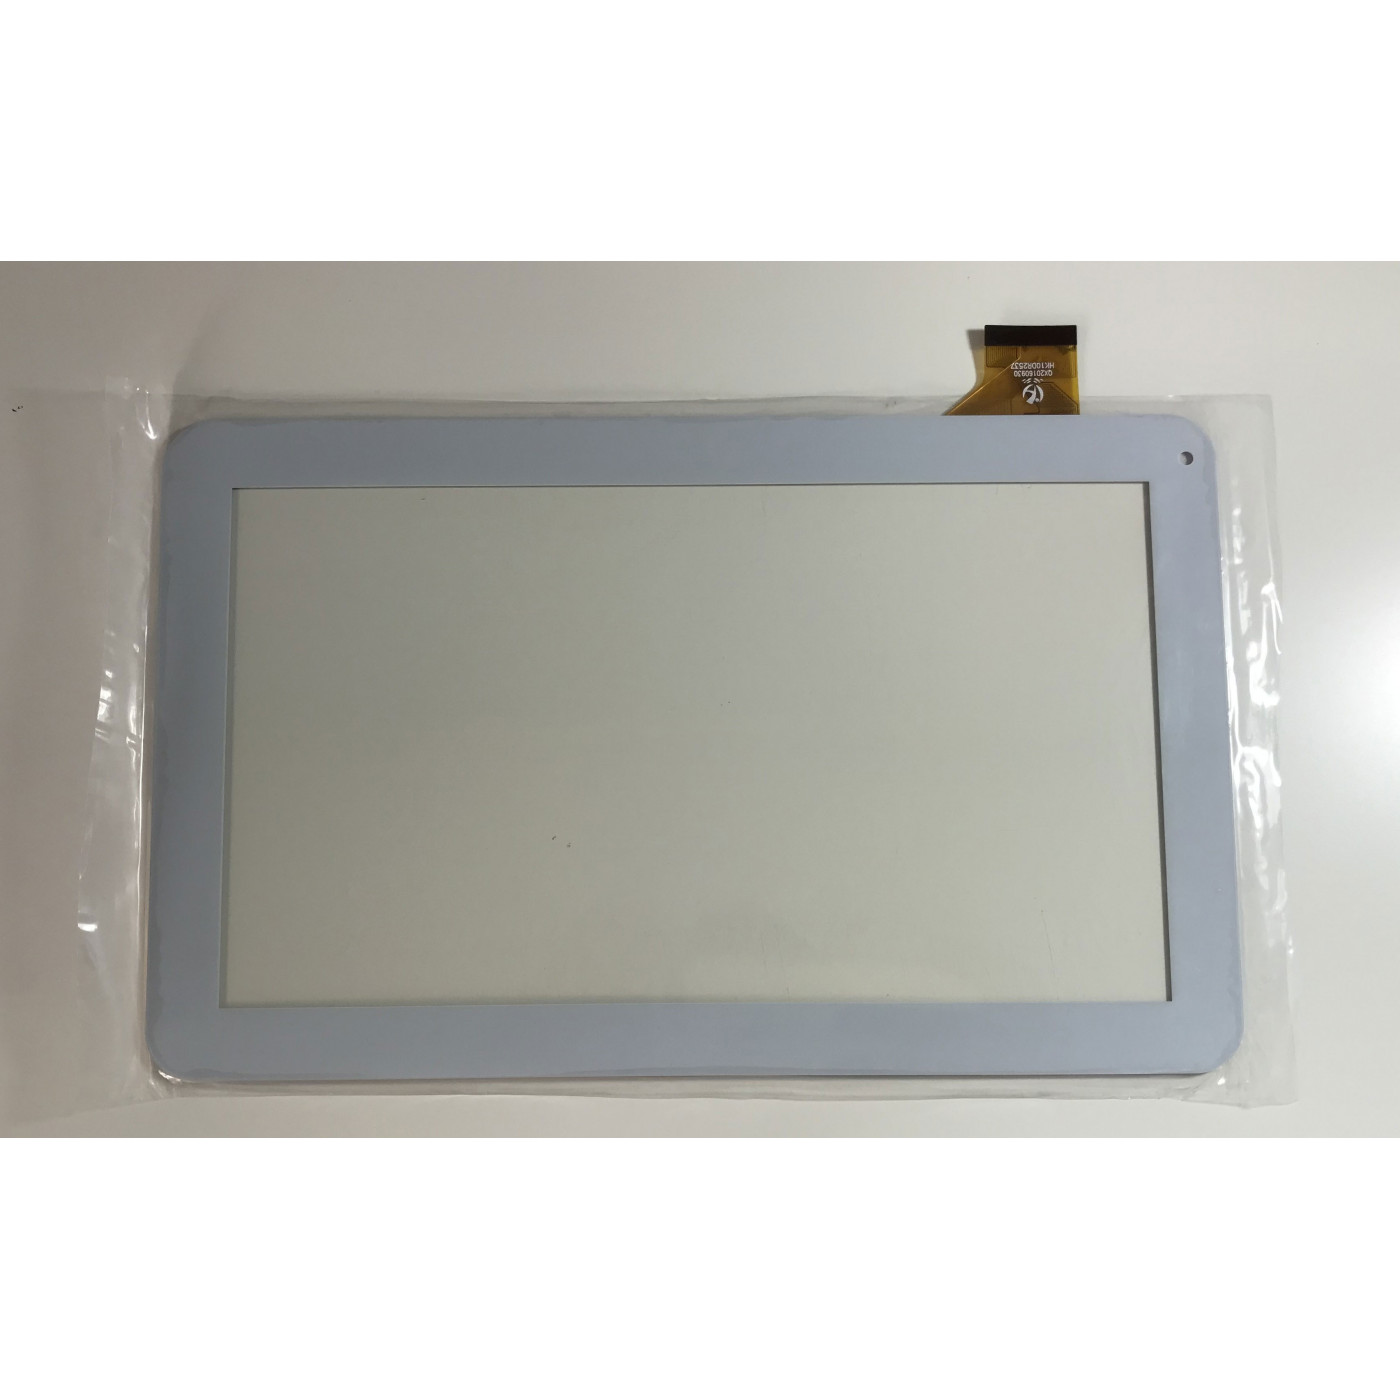 Écran tactile Majestic TAB-302N 3G Blanc 302 N GLASS Tablet Digitizer 10.1